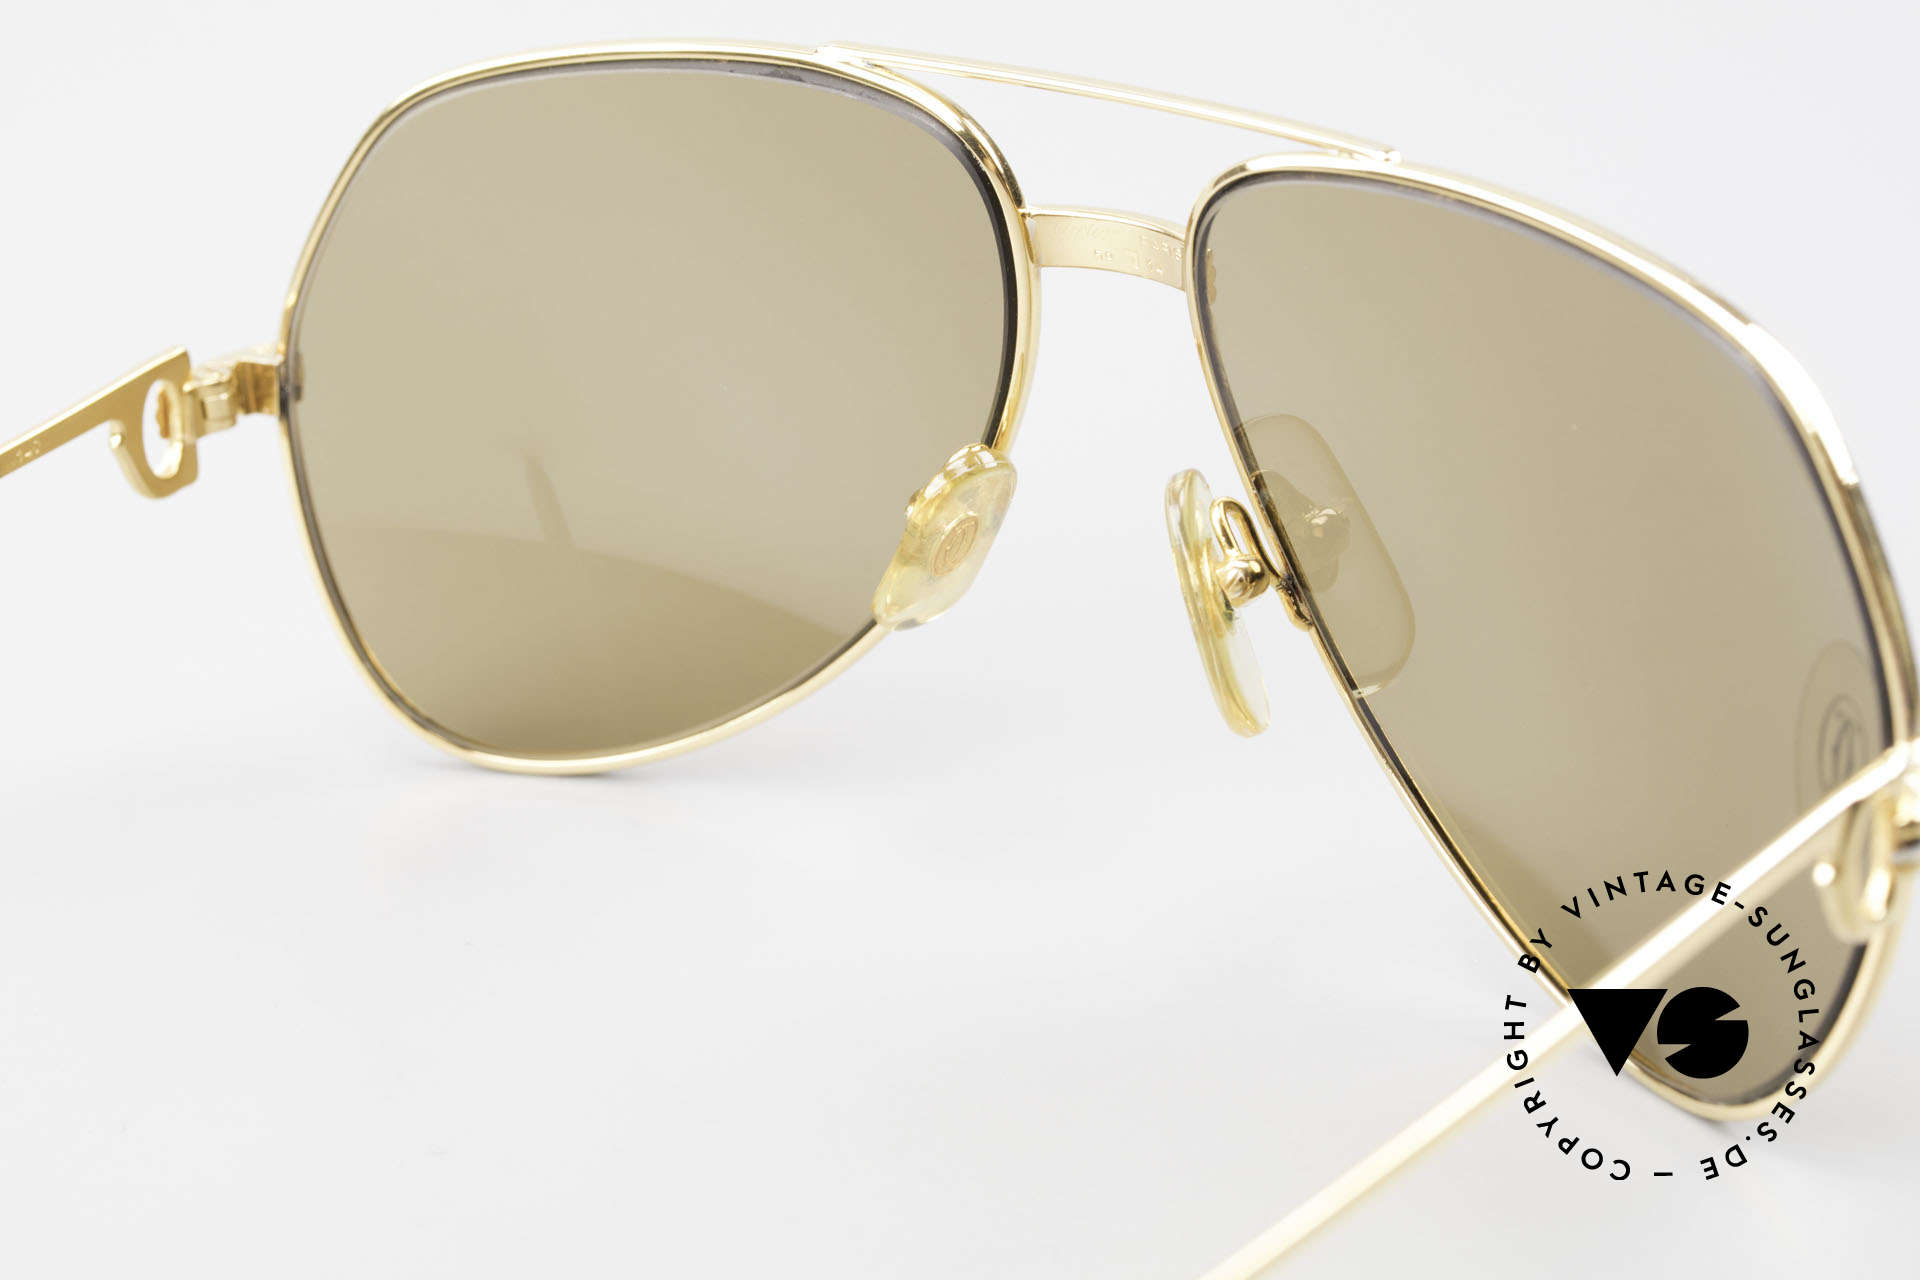 Cartier Vendome LC - M Mystic Cartier Mineral Lenses, unworn, new old stock (NOS), with full original packing, Made for Men